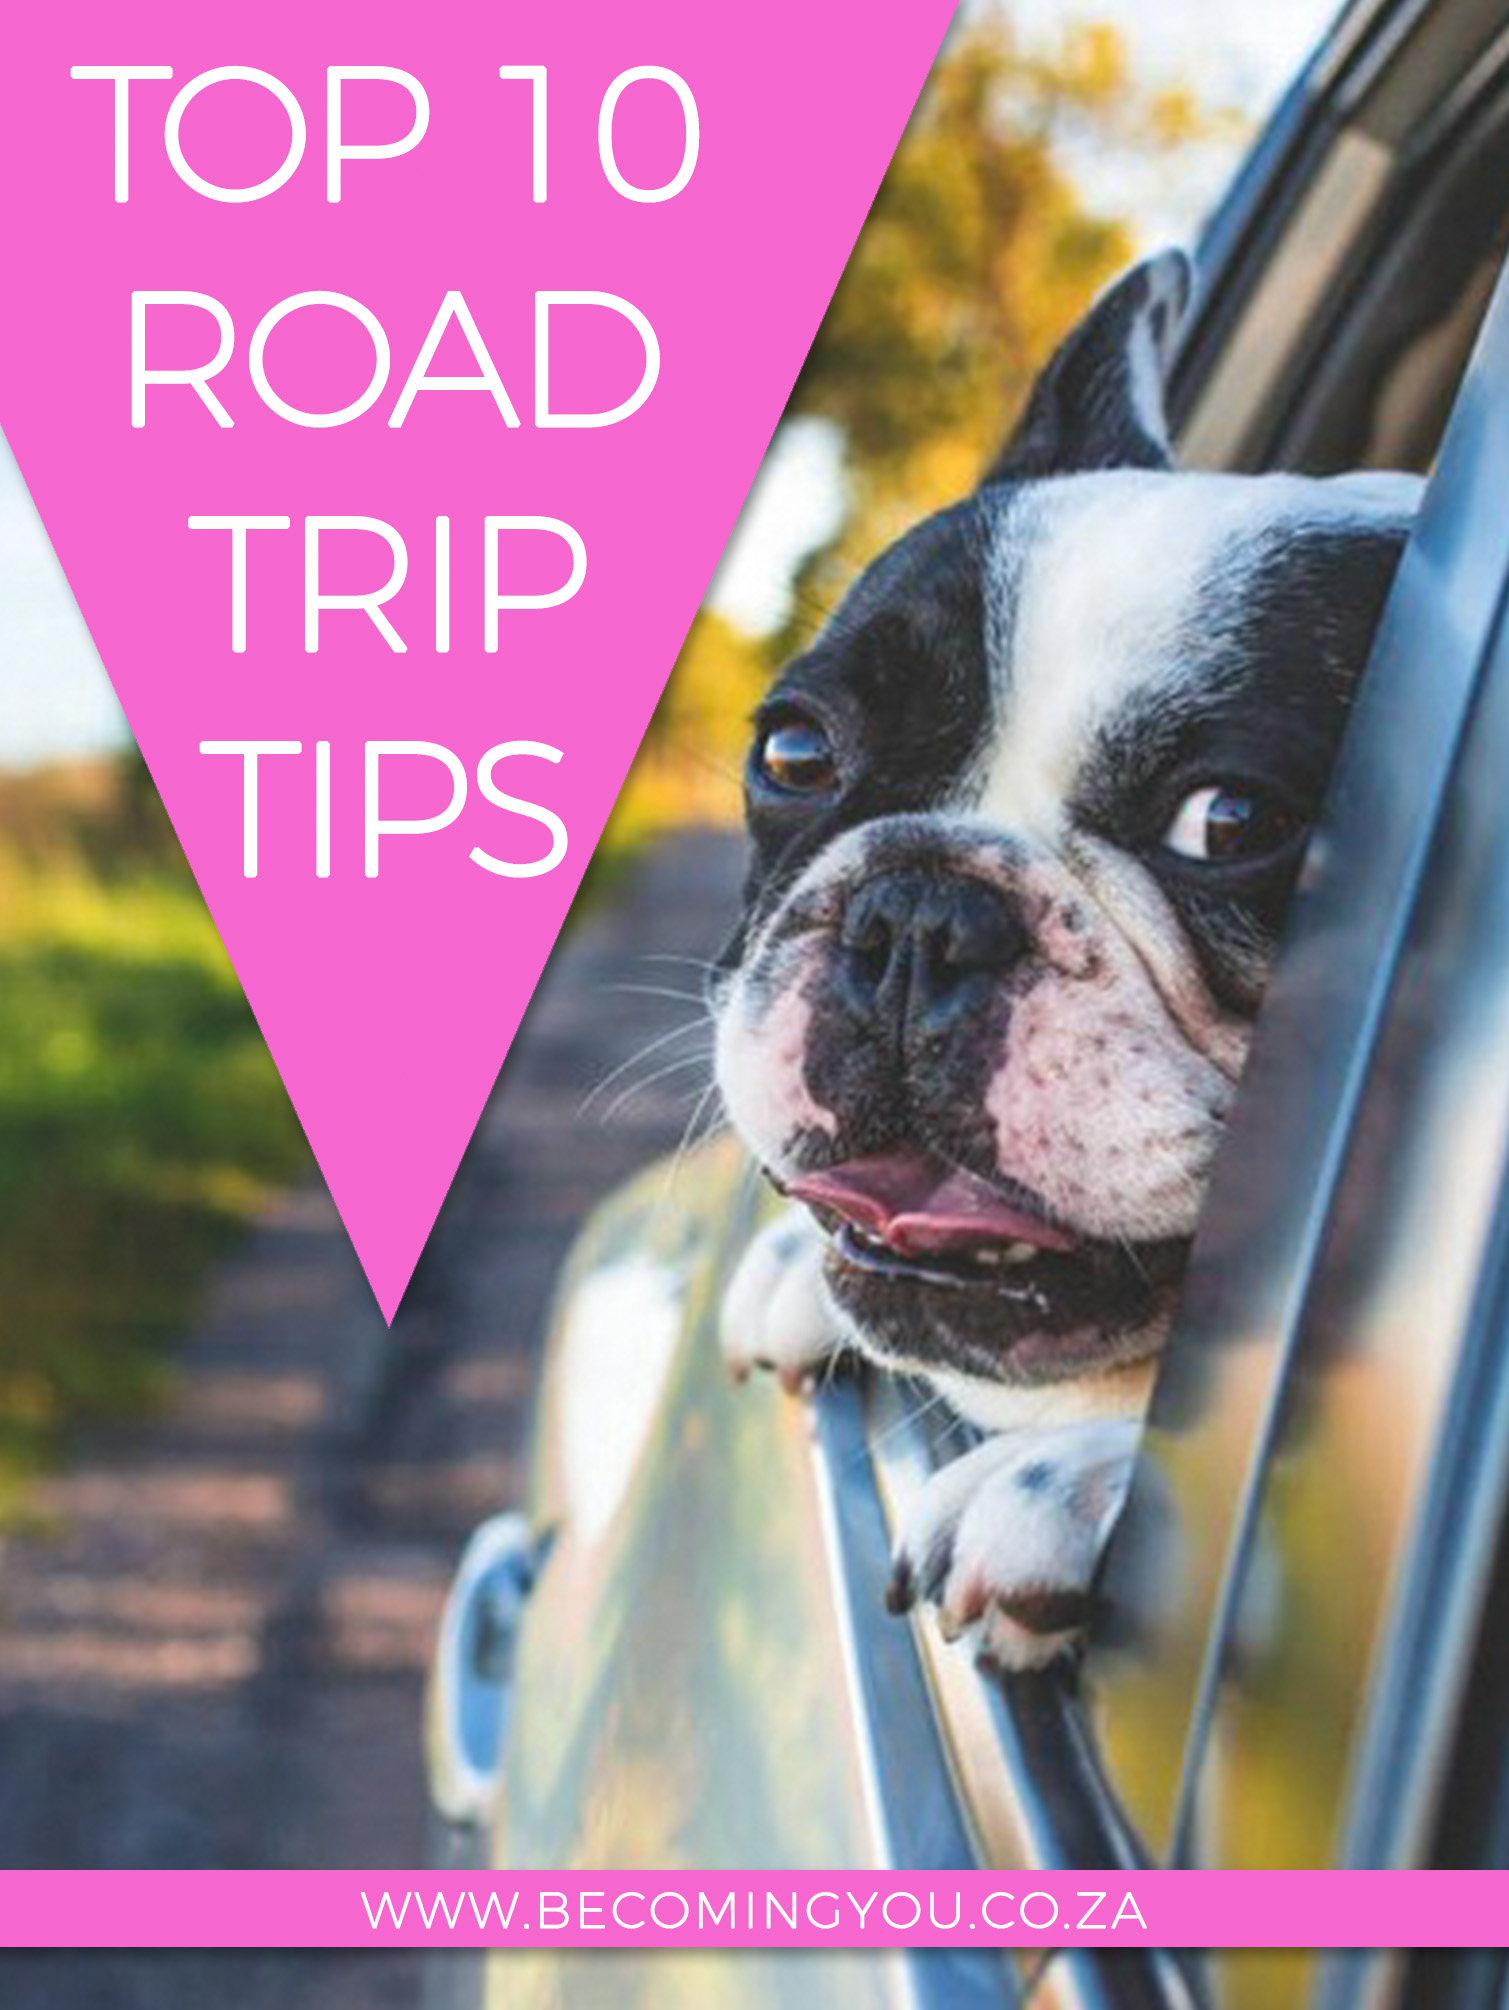 ROAD TRIP TIPS